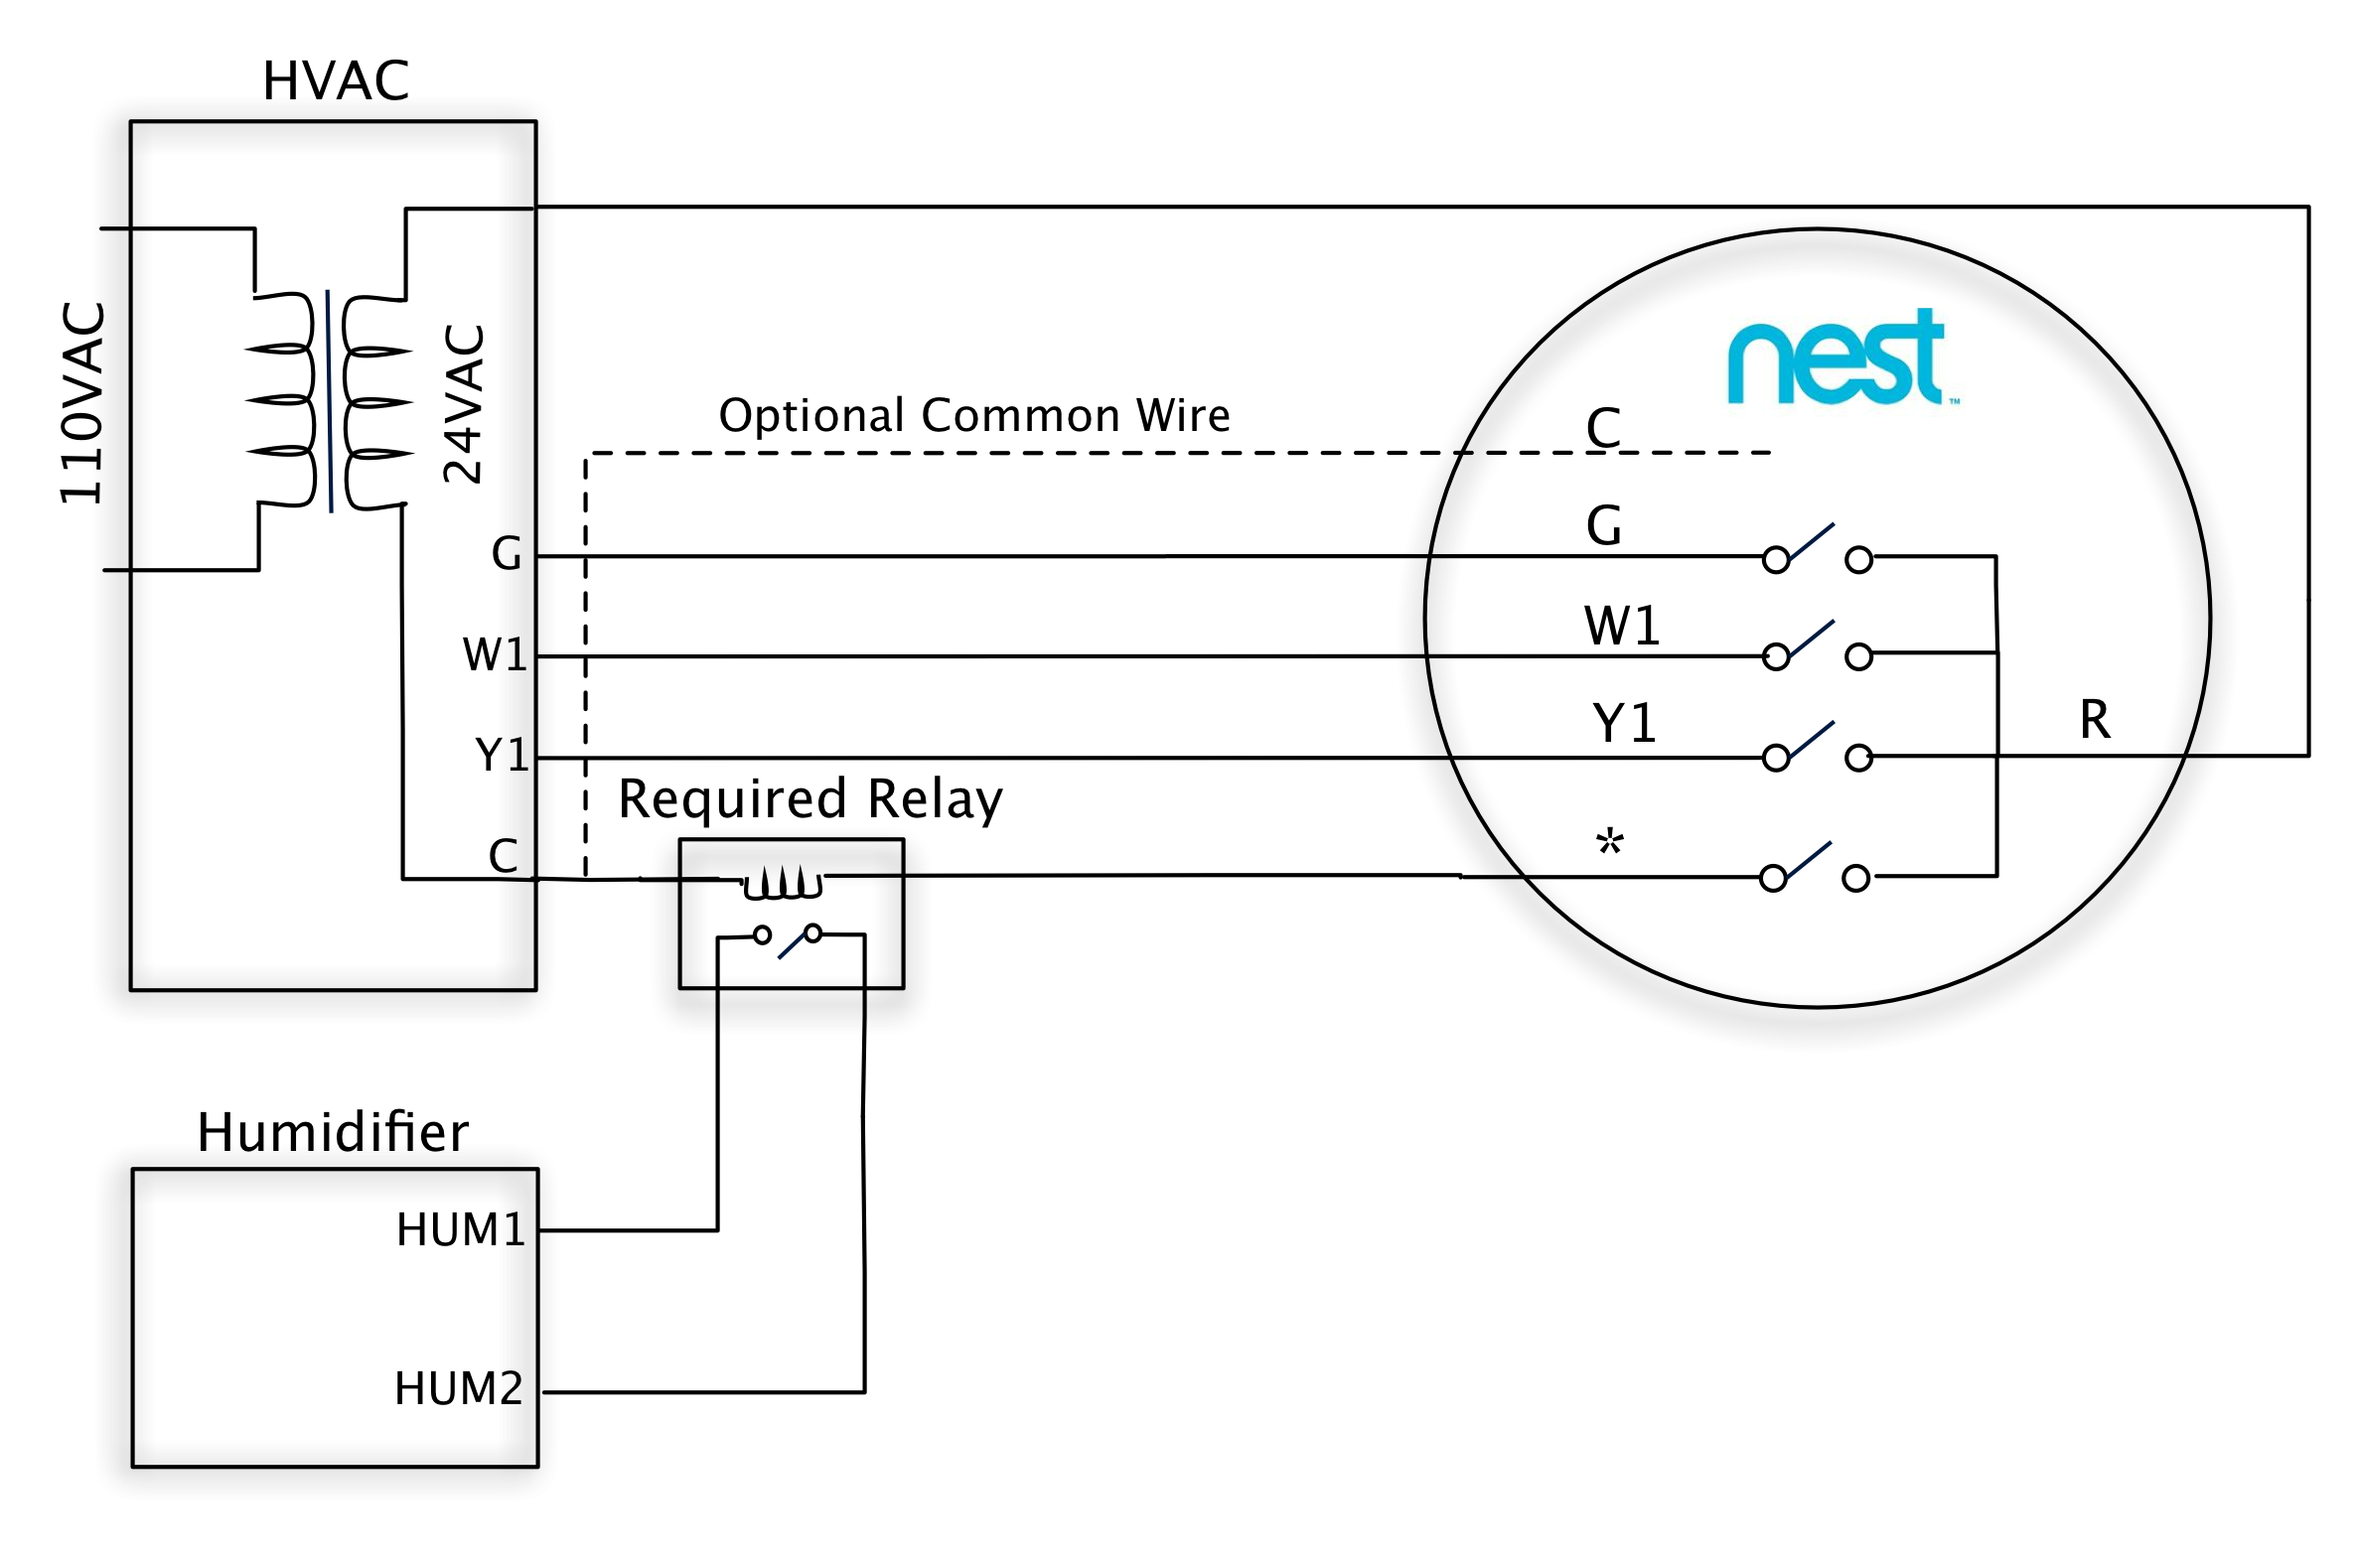 nest humidifier wiring diagram with Help With Installation And Set Up on 1420045 additionally 203566139 moreover Honeywell Wiring Diagrams together with How To Add C Wire To Thermostat further Raspberry Pi Powered Heating Controller Part 1.